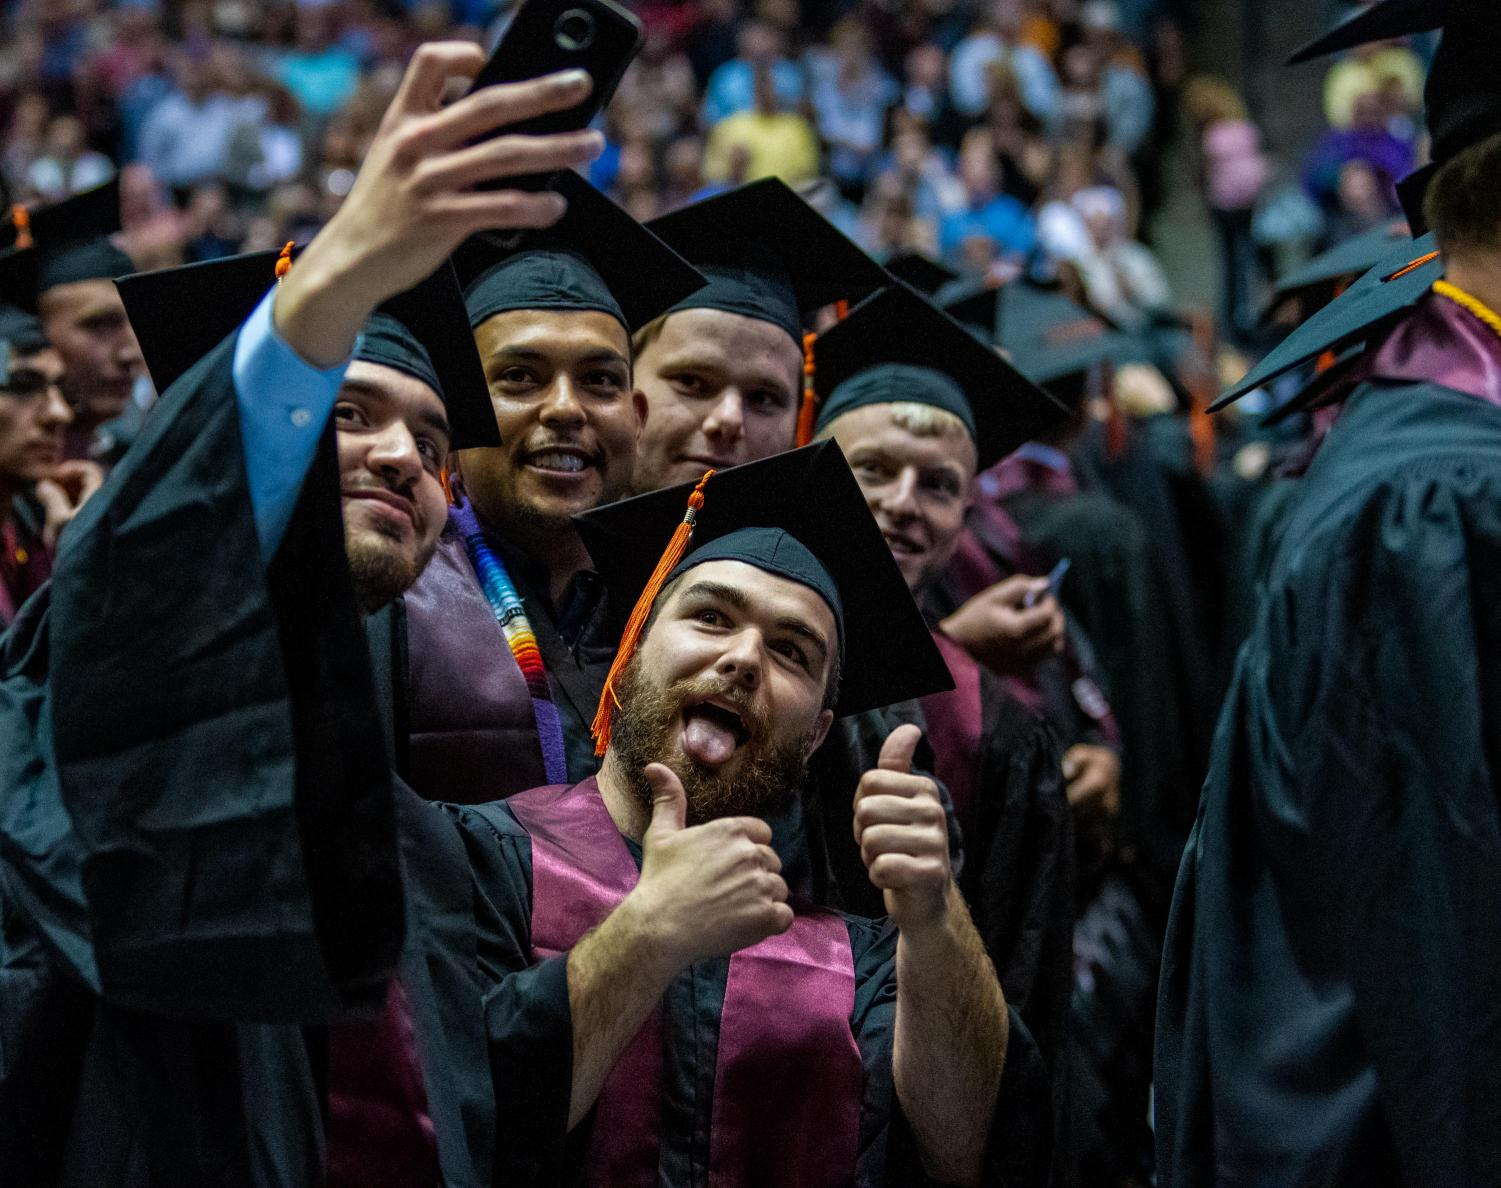 Graduating+students+pose+together+for+a+picture+on+Saturday%2C+May+11%2C+2019+during+the+2019+commencement+inside+the+SIU+Arena.+